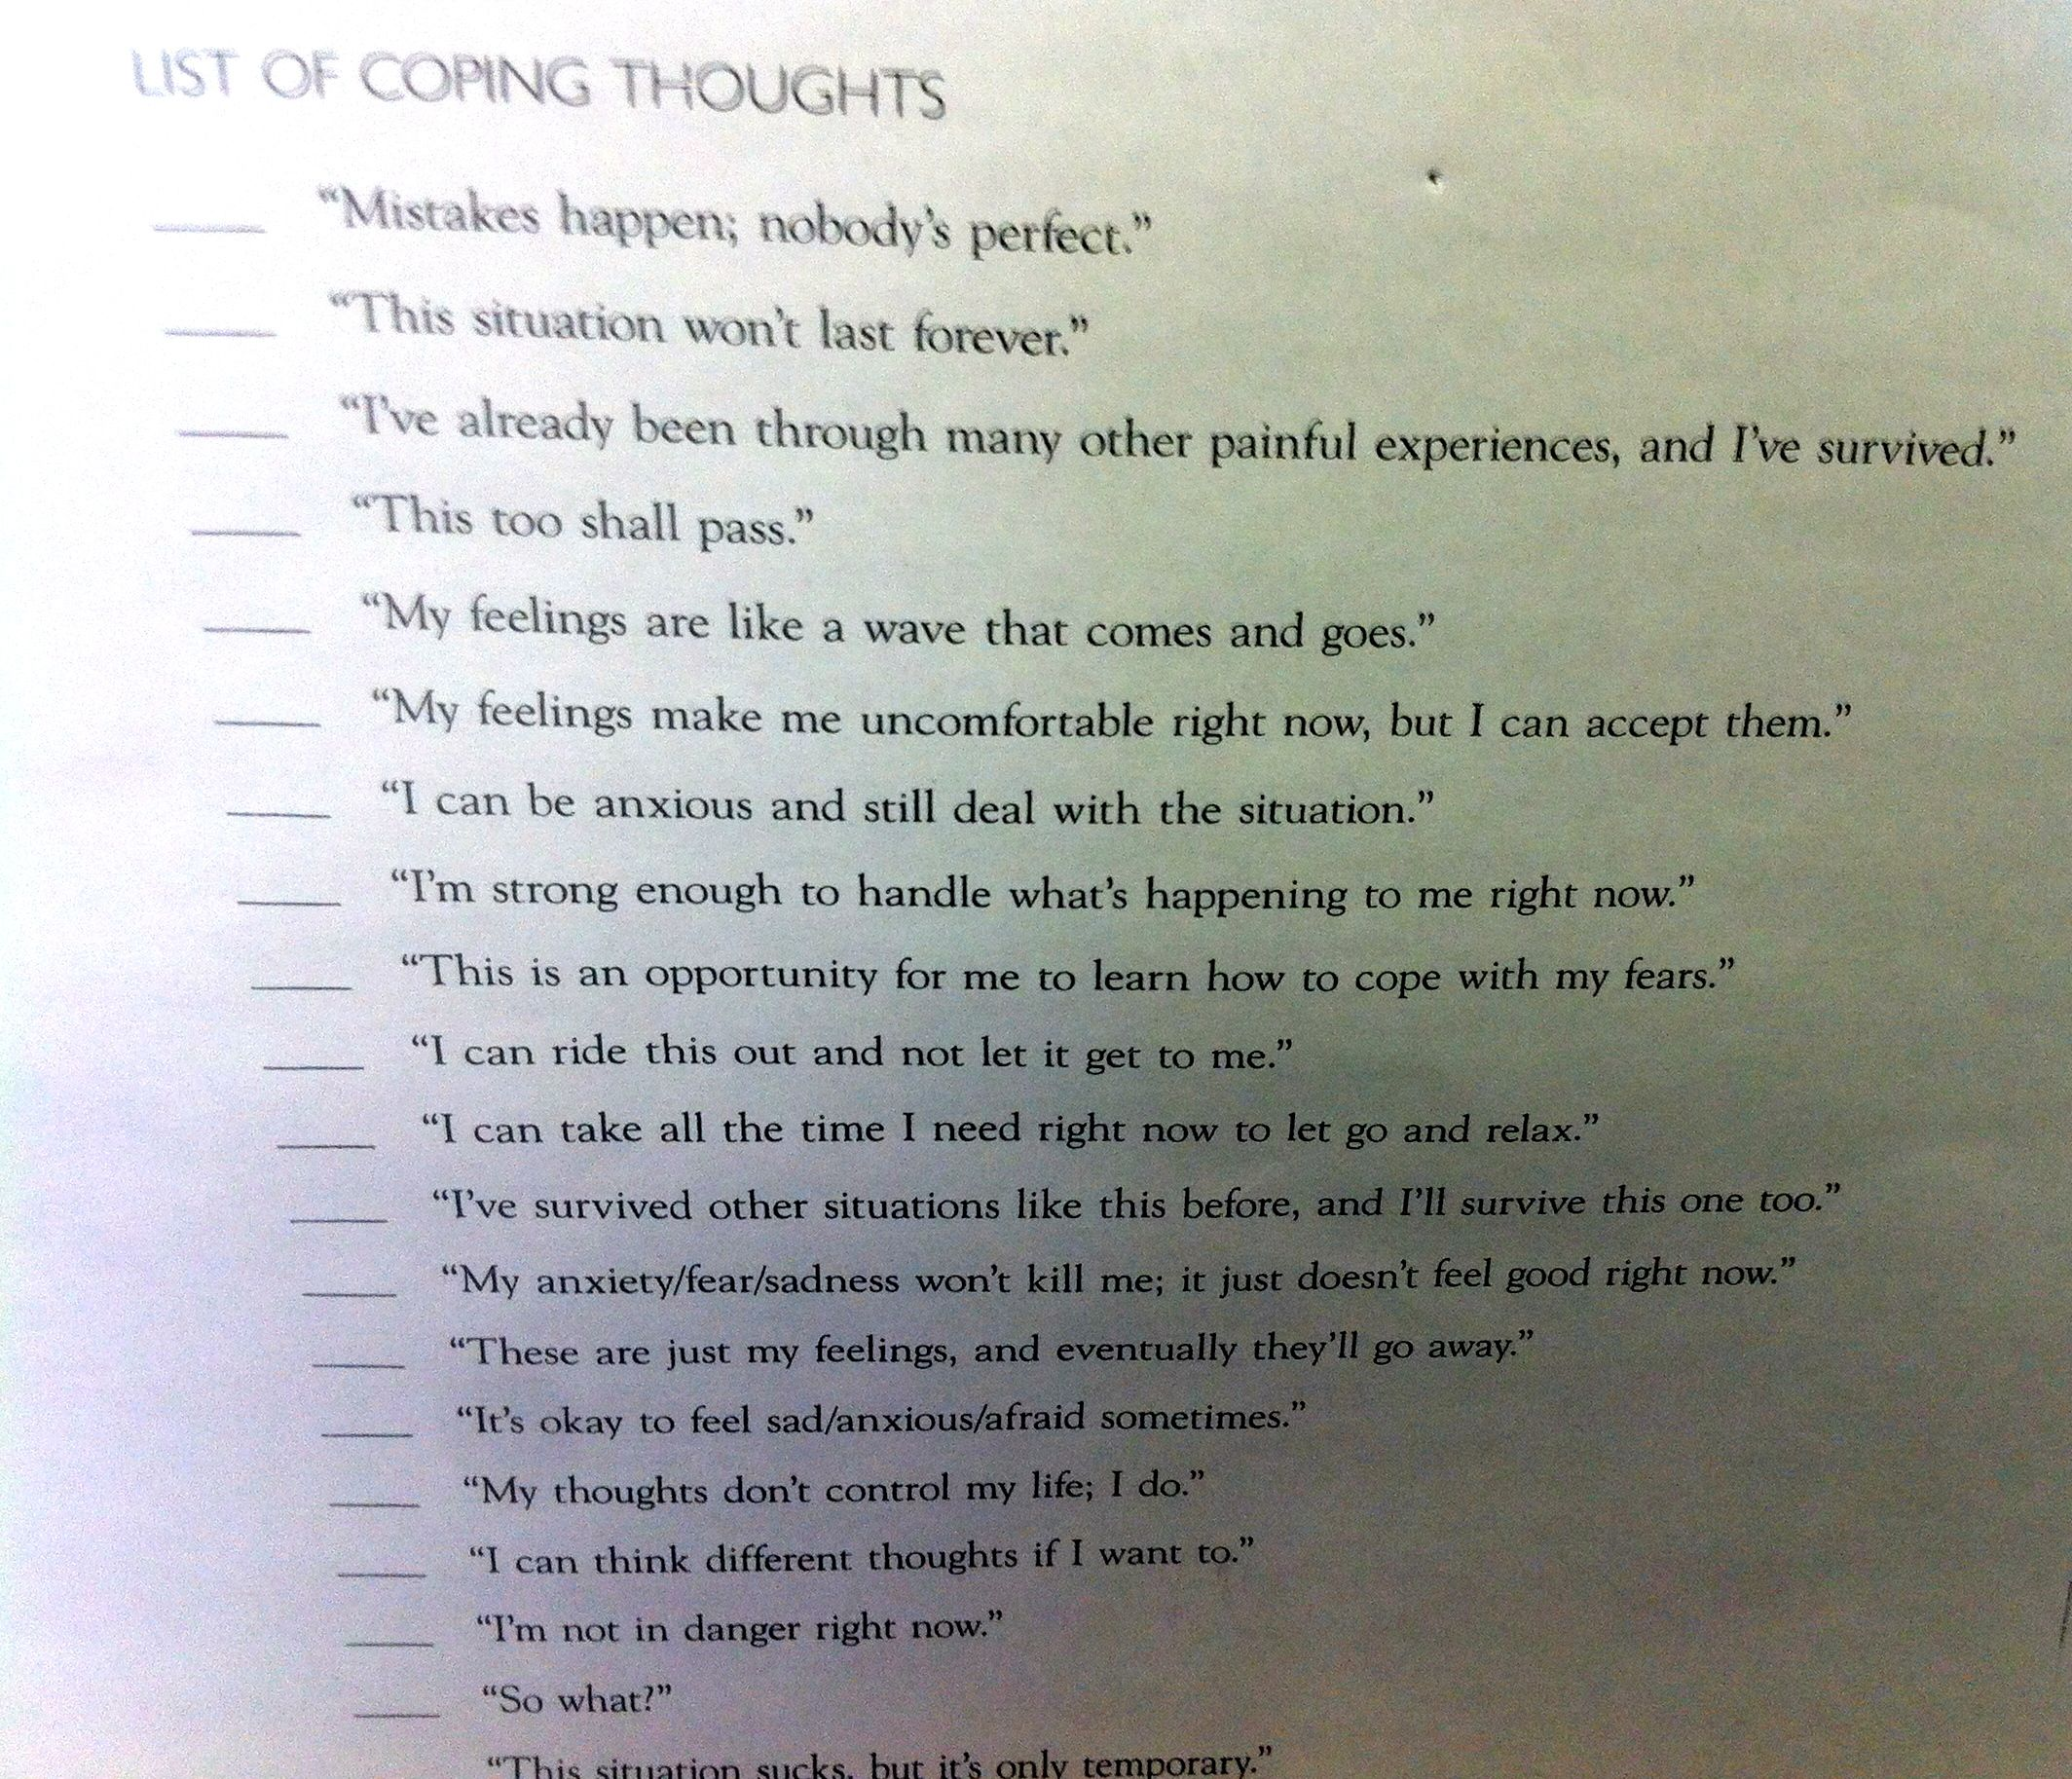 Thinking Coping Skills